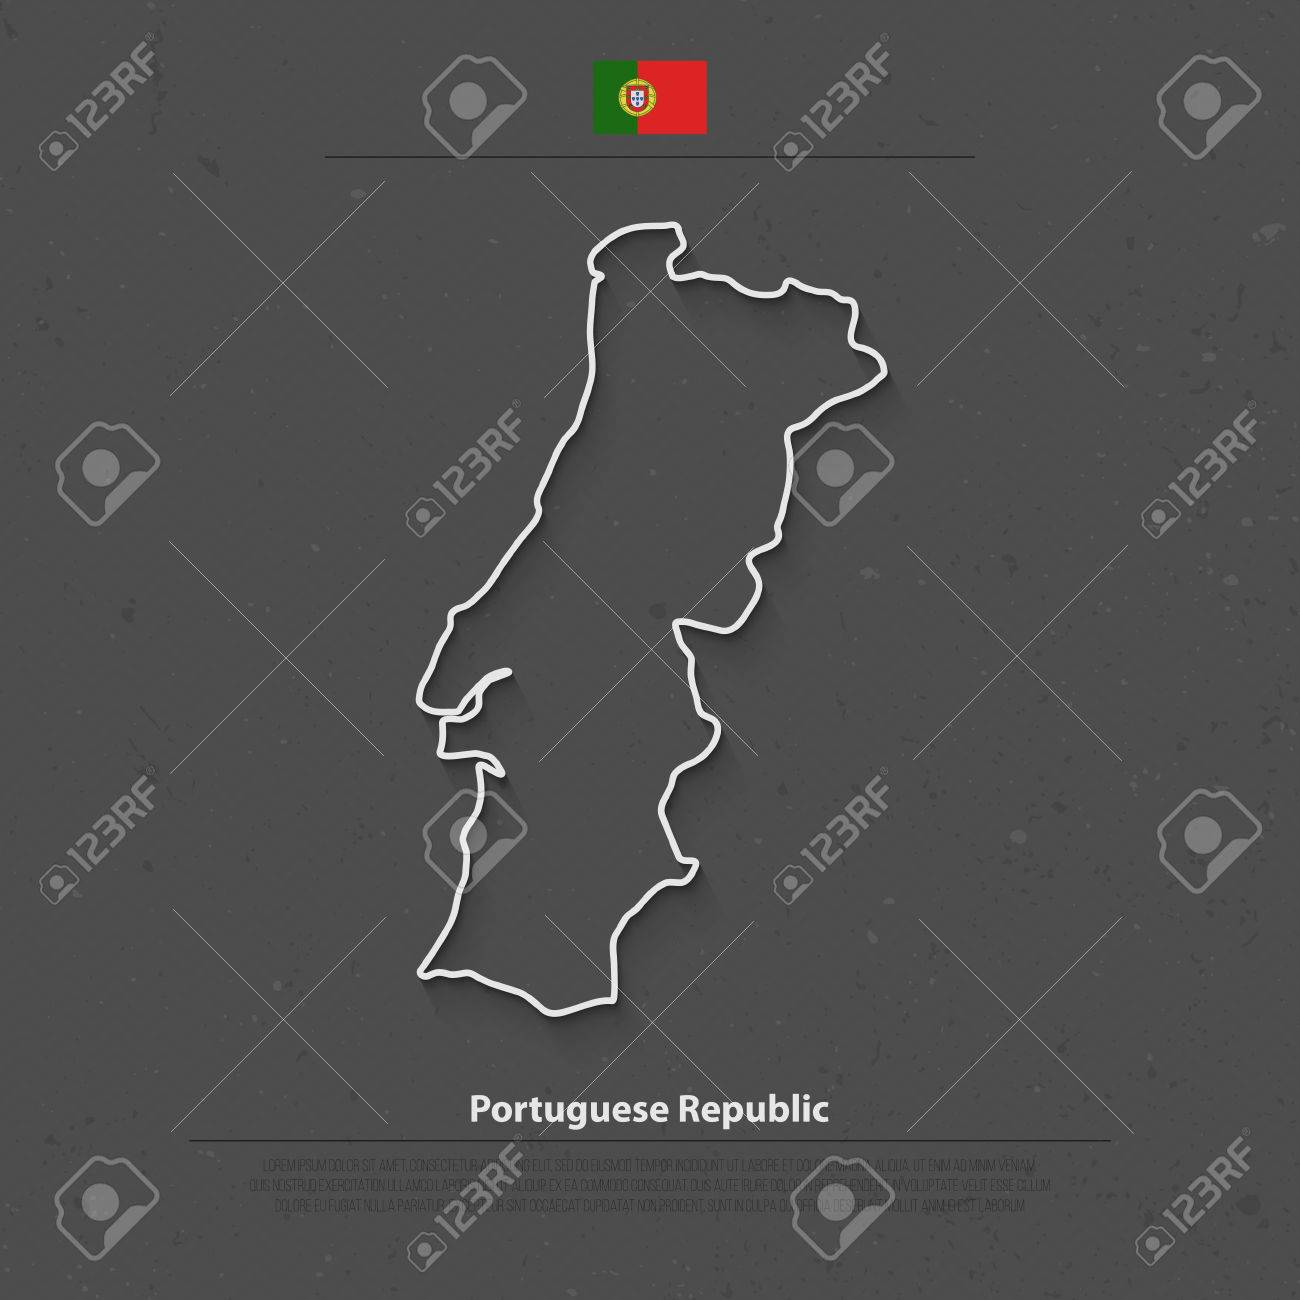 Portugal Map Stock Photos Portugal Sparkfly Fen Map Osrs Map - Portugal map icon